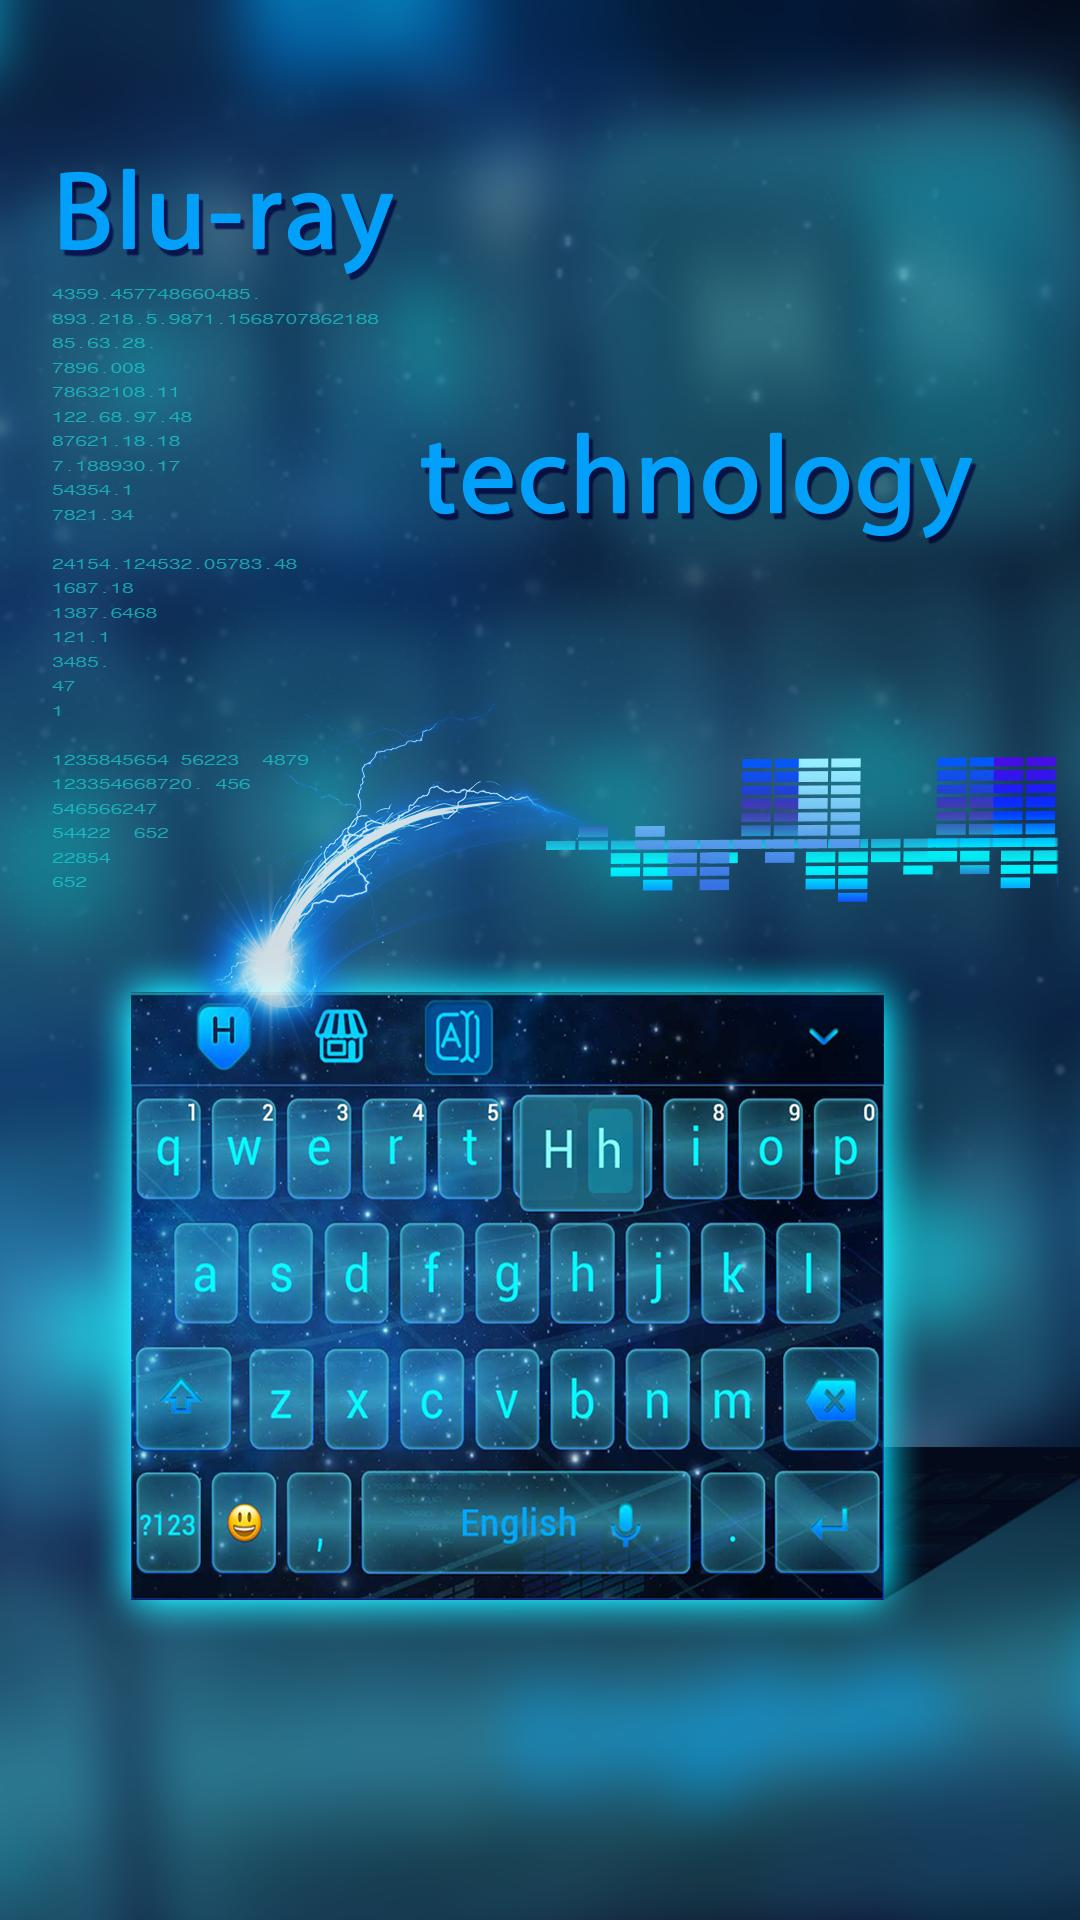 Blu-ray Technology Keyboard Theme for Android - APK Download